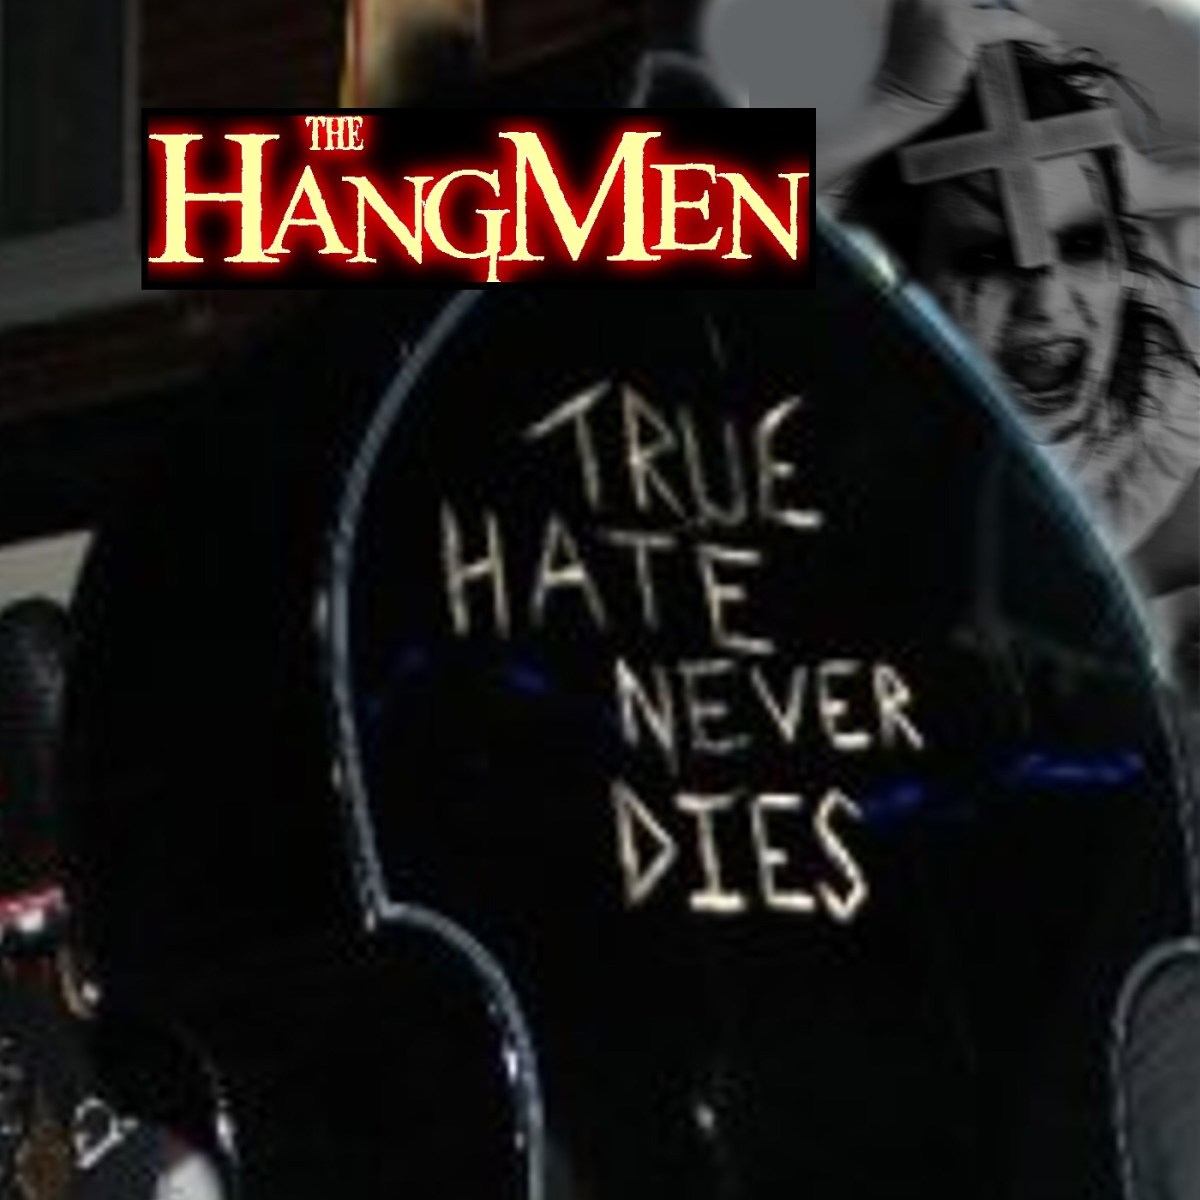 The Hangmen - True Hate Never Dies (Self-Release)